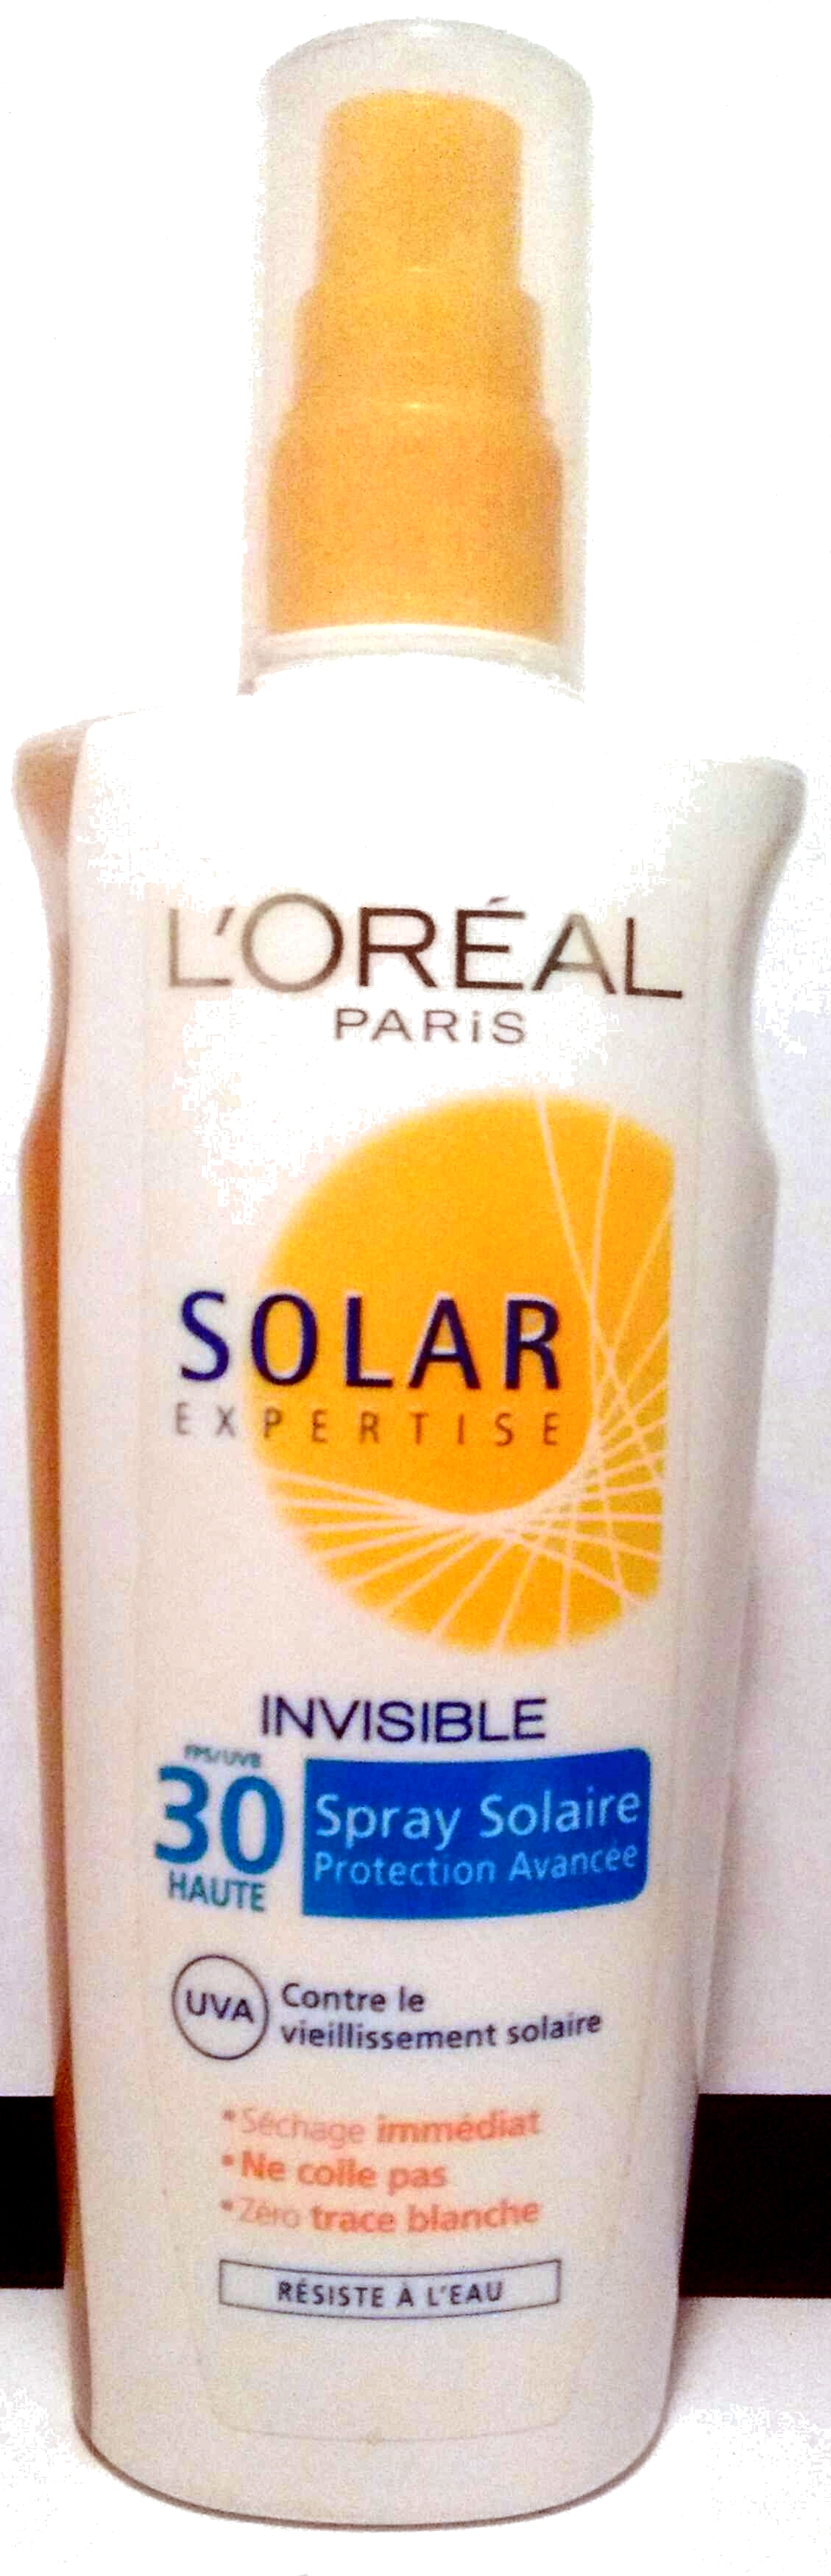 Solar Expertise Spray solaire Invisible 30 - Produit - fr